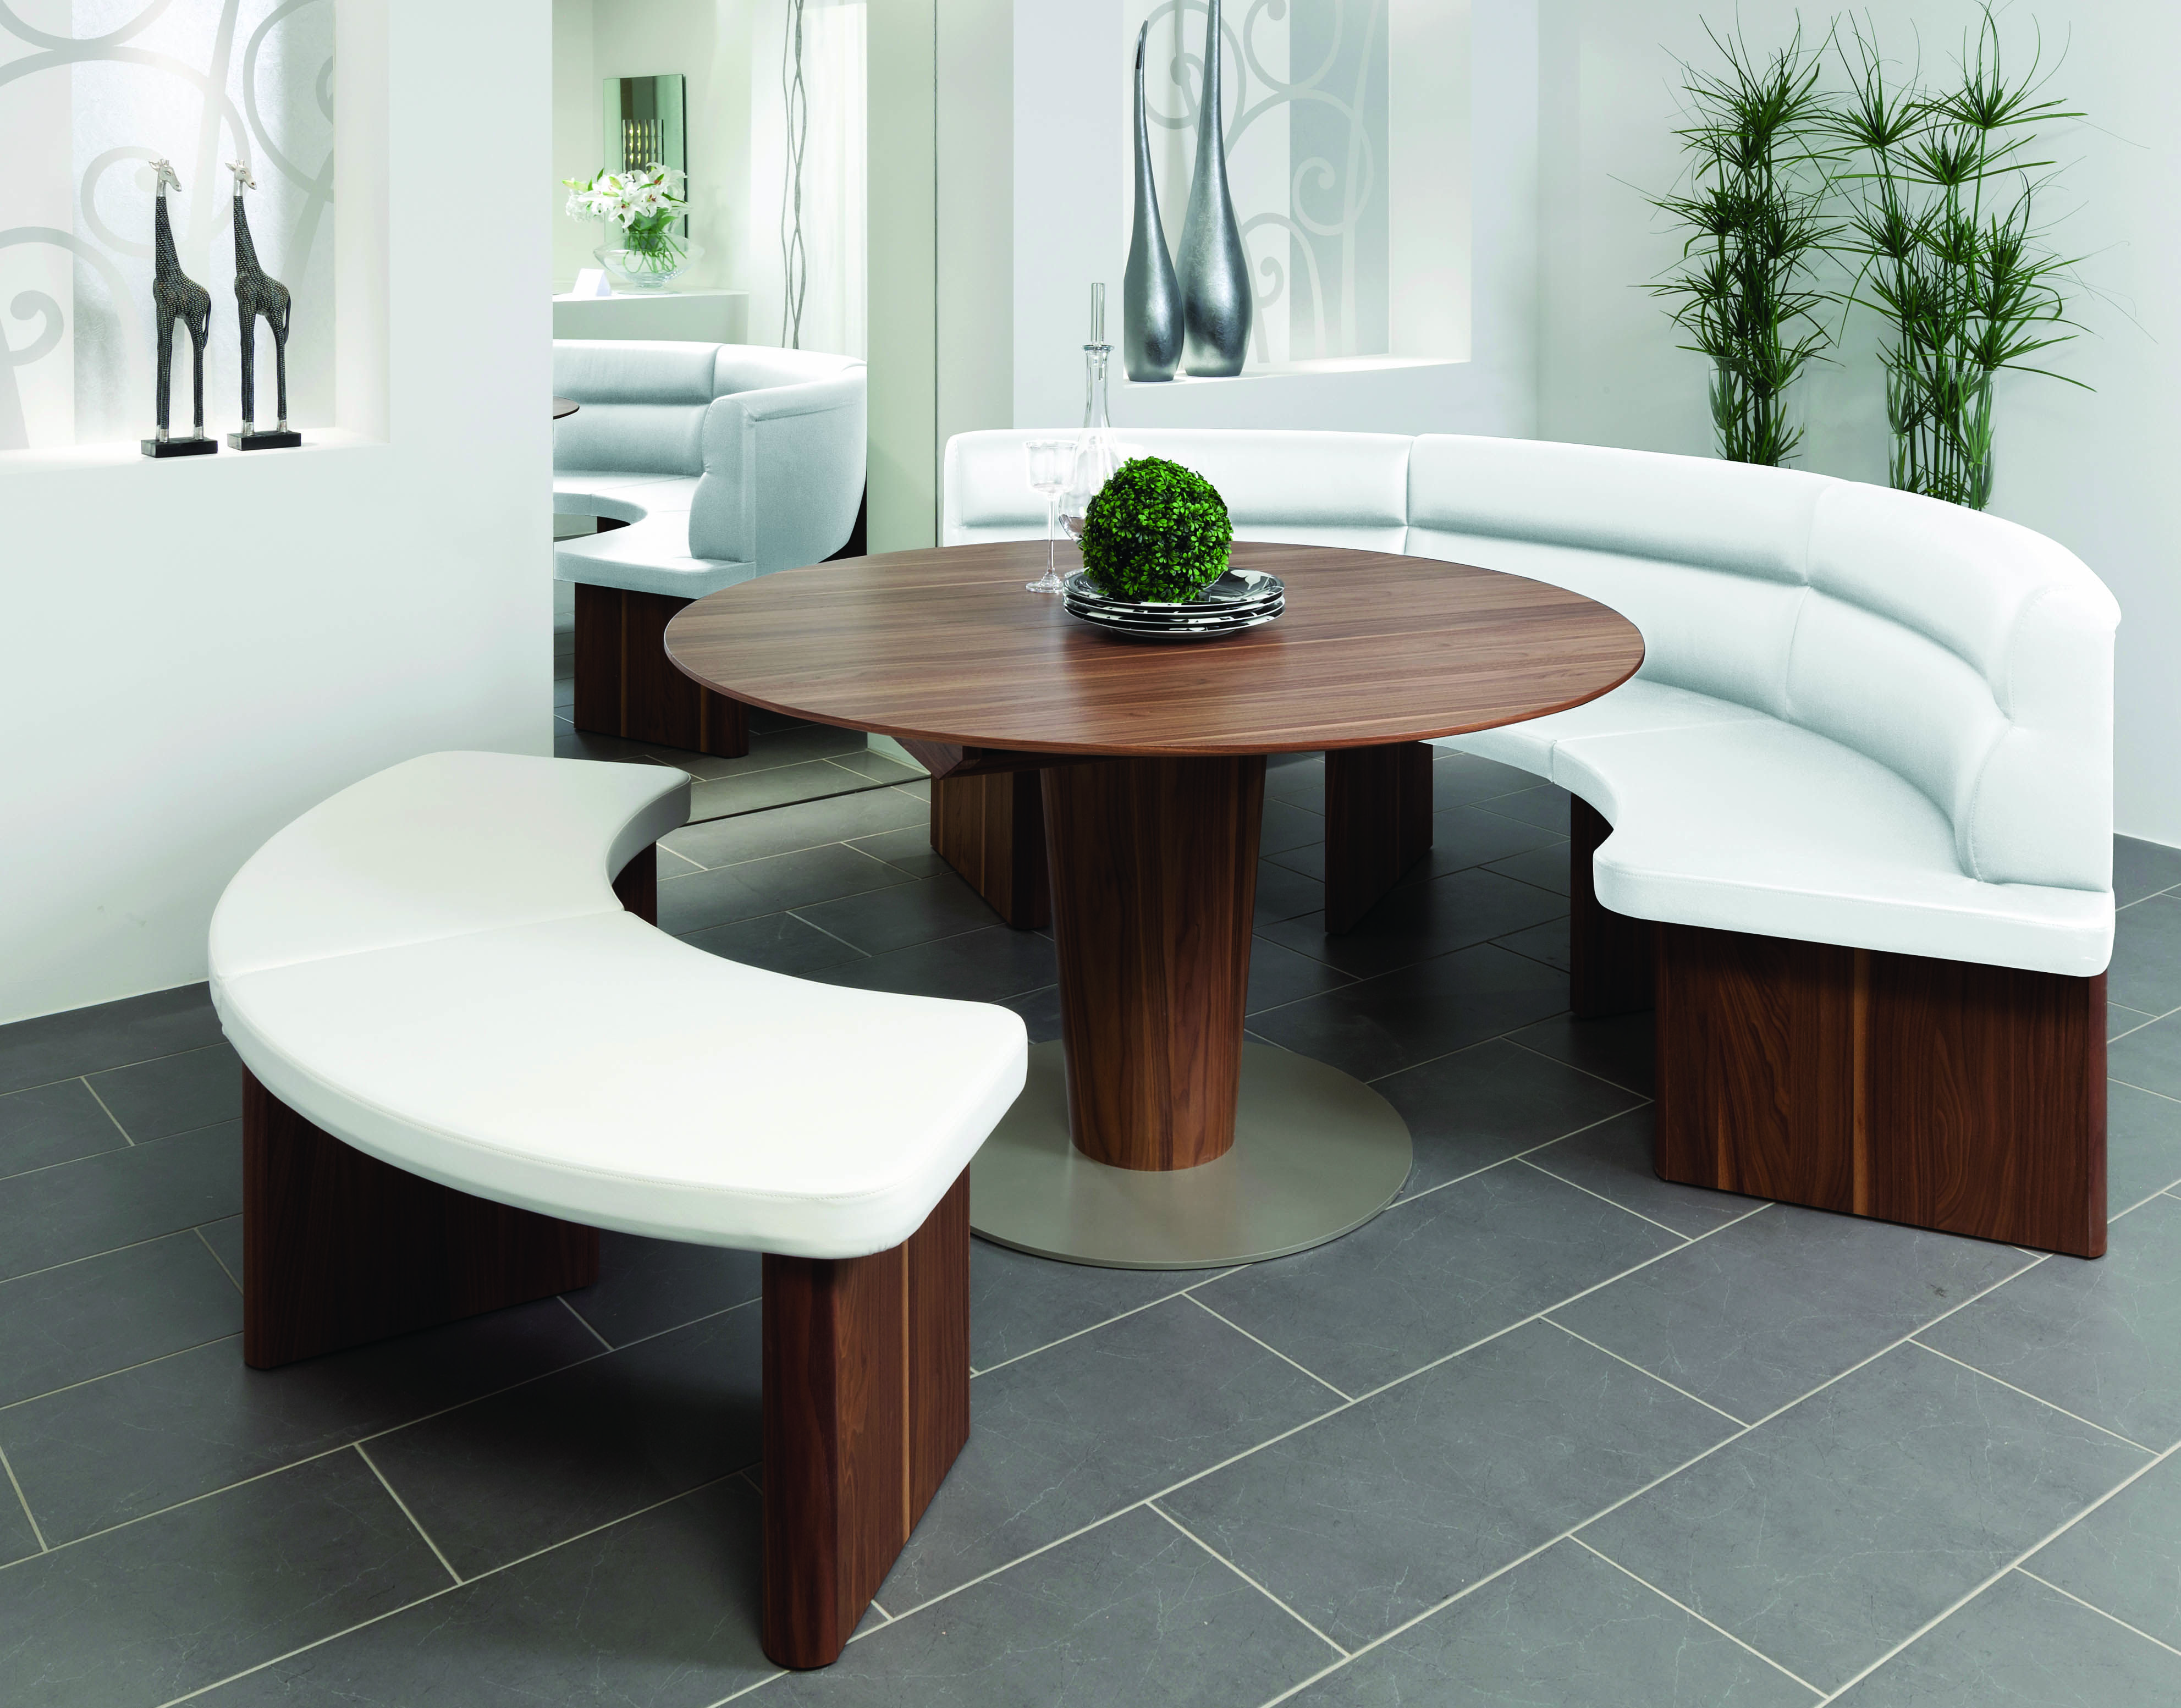 Charming WÖSSNER 220 Elm 302 This Rundbank Dining Table Has A High Contemporary  Style And Upholstered Seats Design Ideas